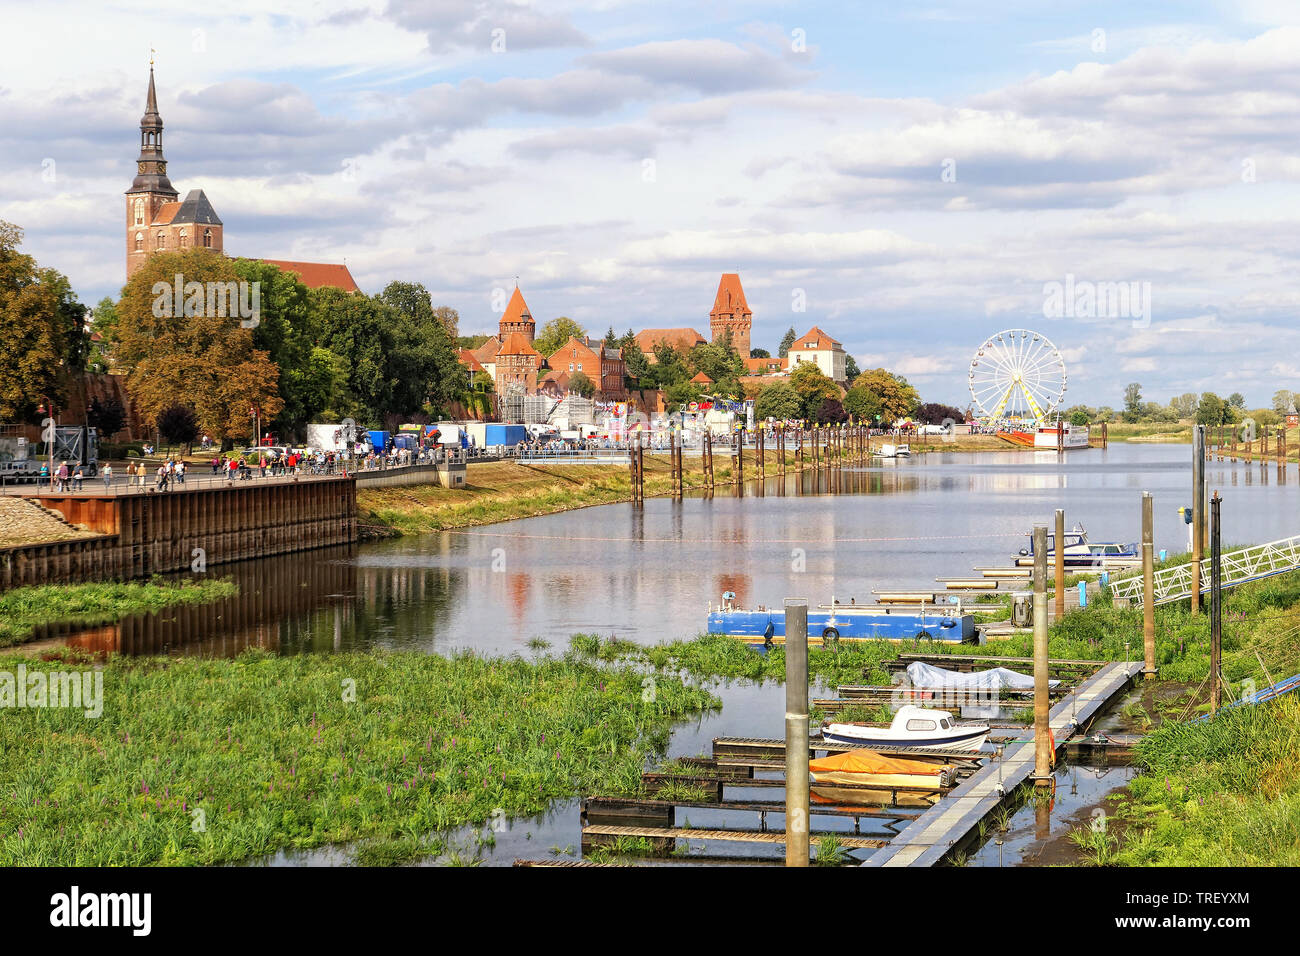 Tangermuende, Saxony Anhalt/ GERMANY May 12 2019: Cityscape of Tangermuende with its Stephan cathedral with harbor. People having un on a fair. Stock Photo